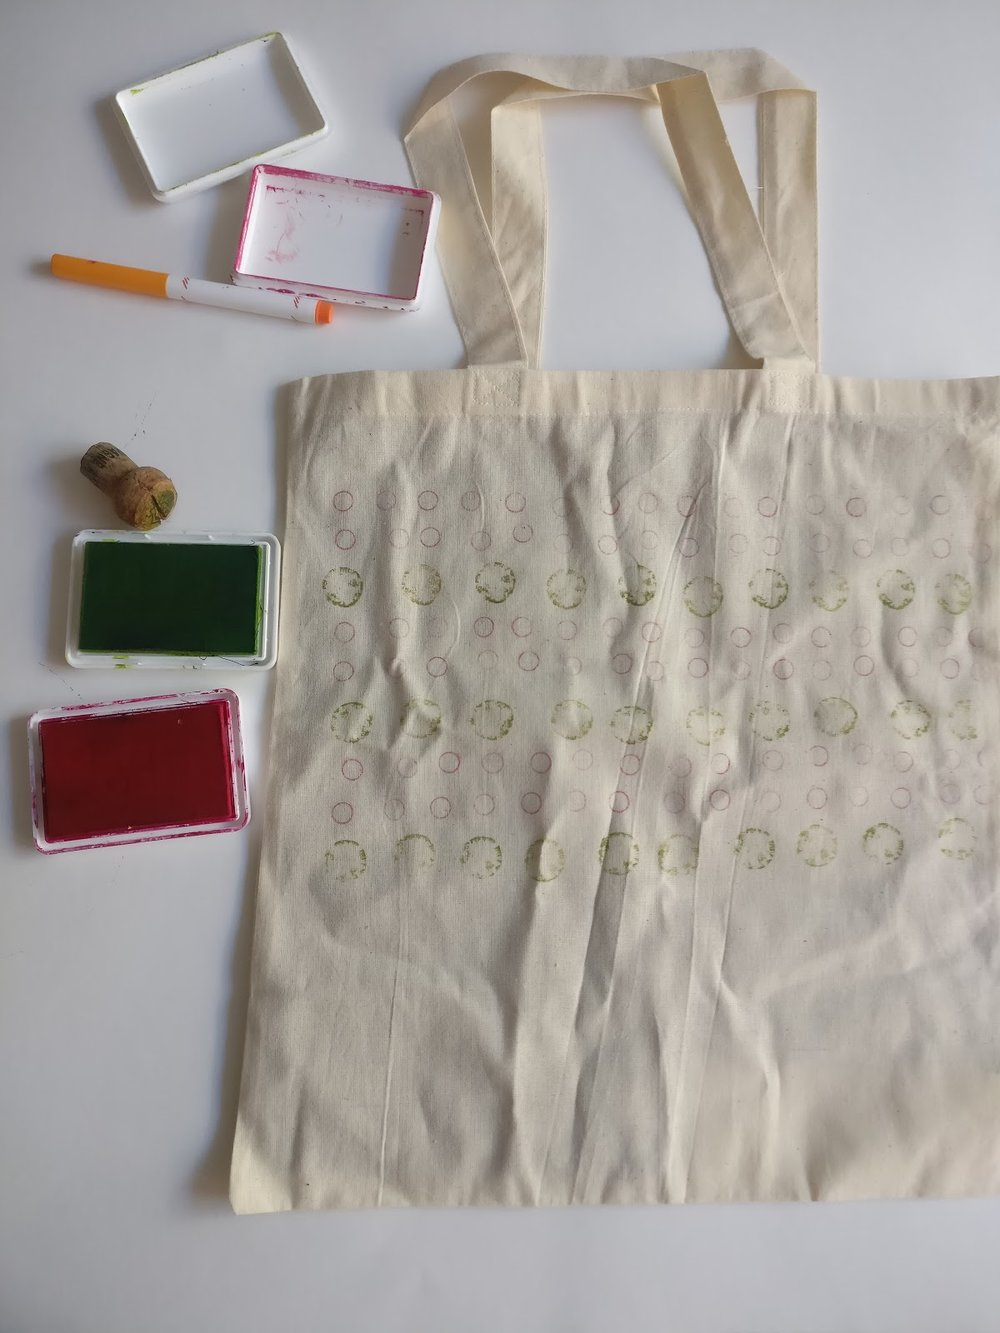 Tote Bag in progress 1.jpg